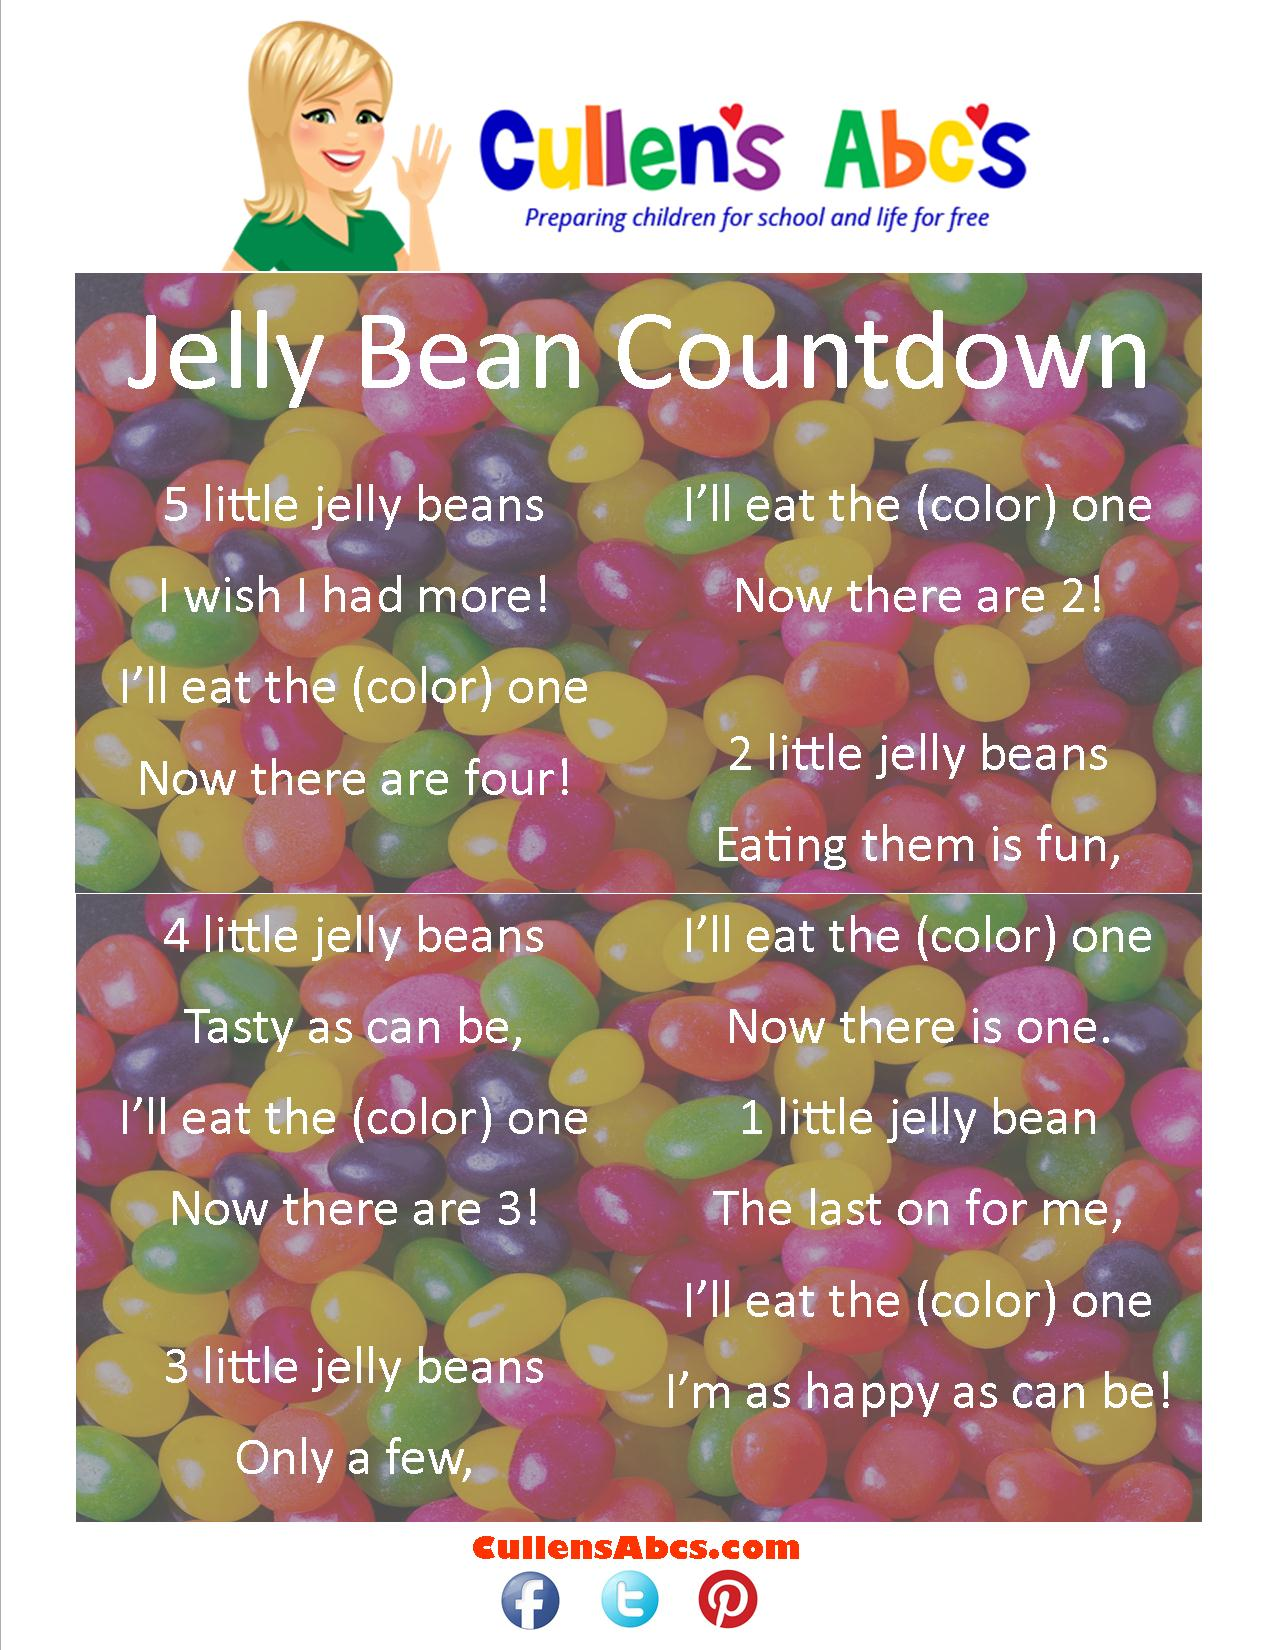 Jelly Bean Countdown